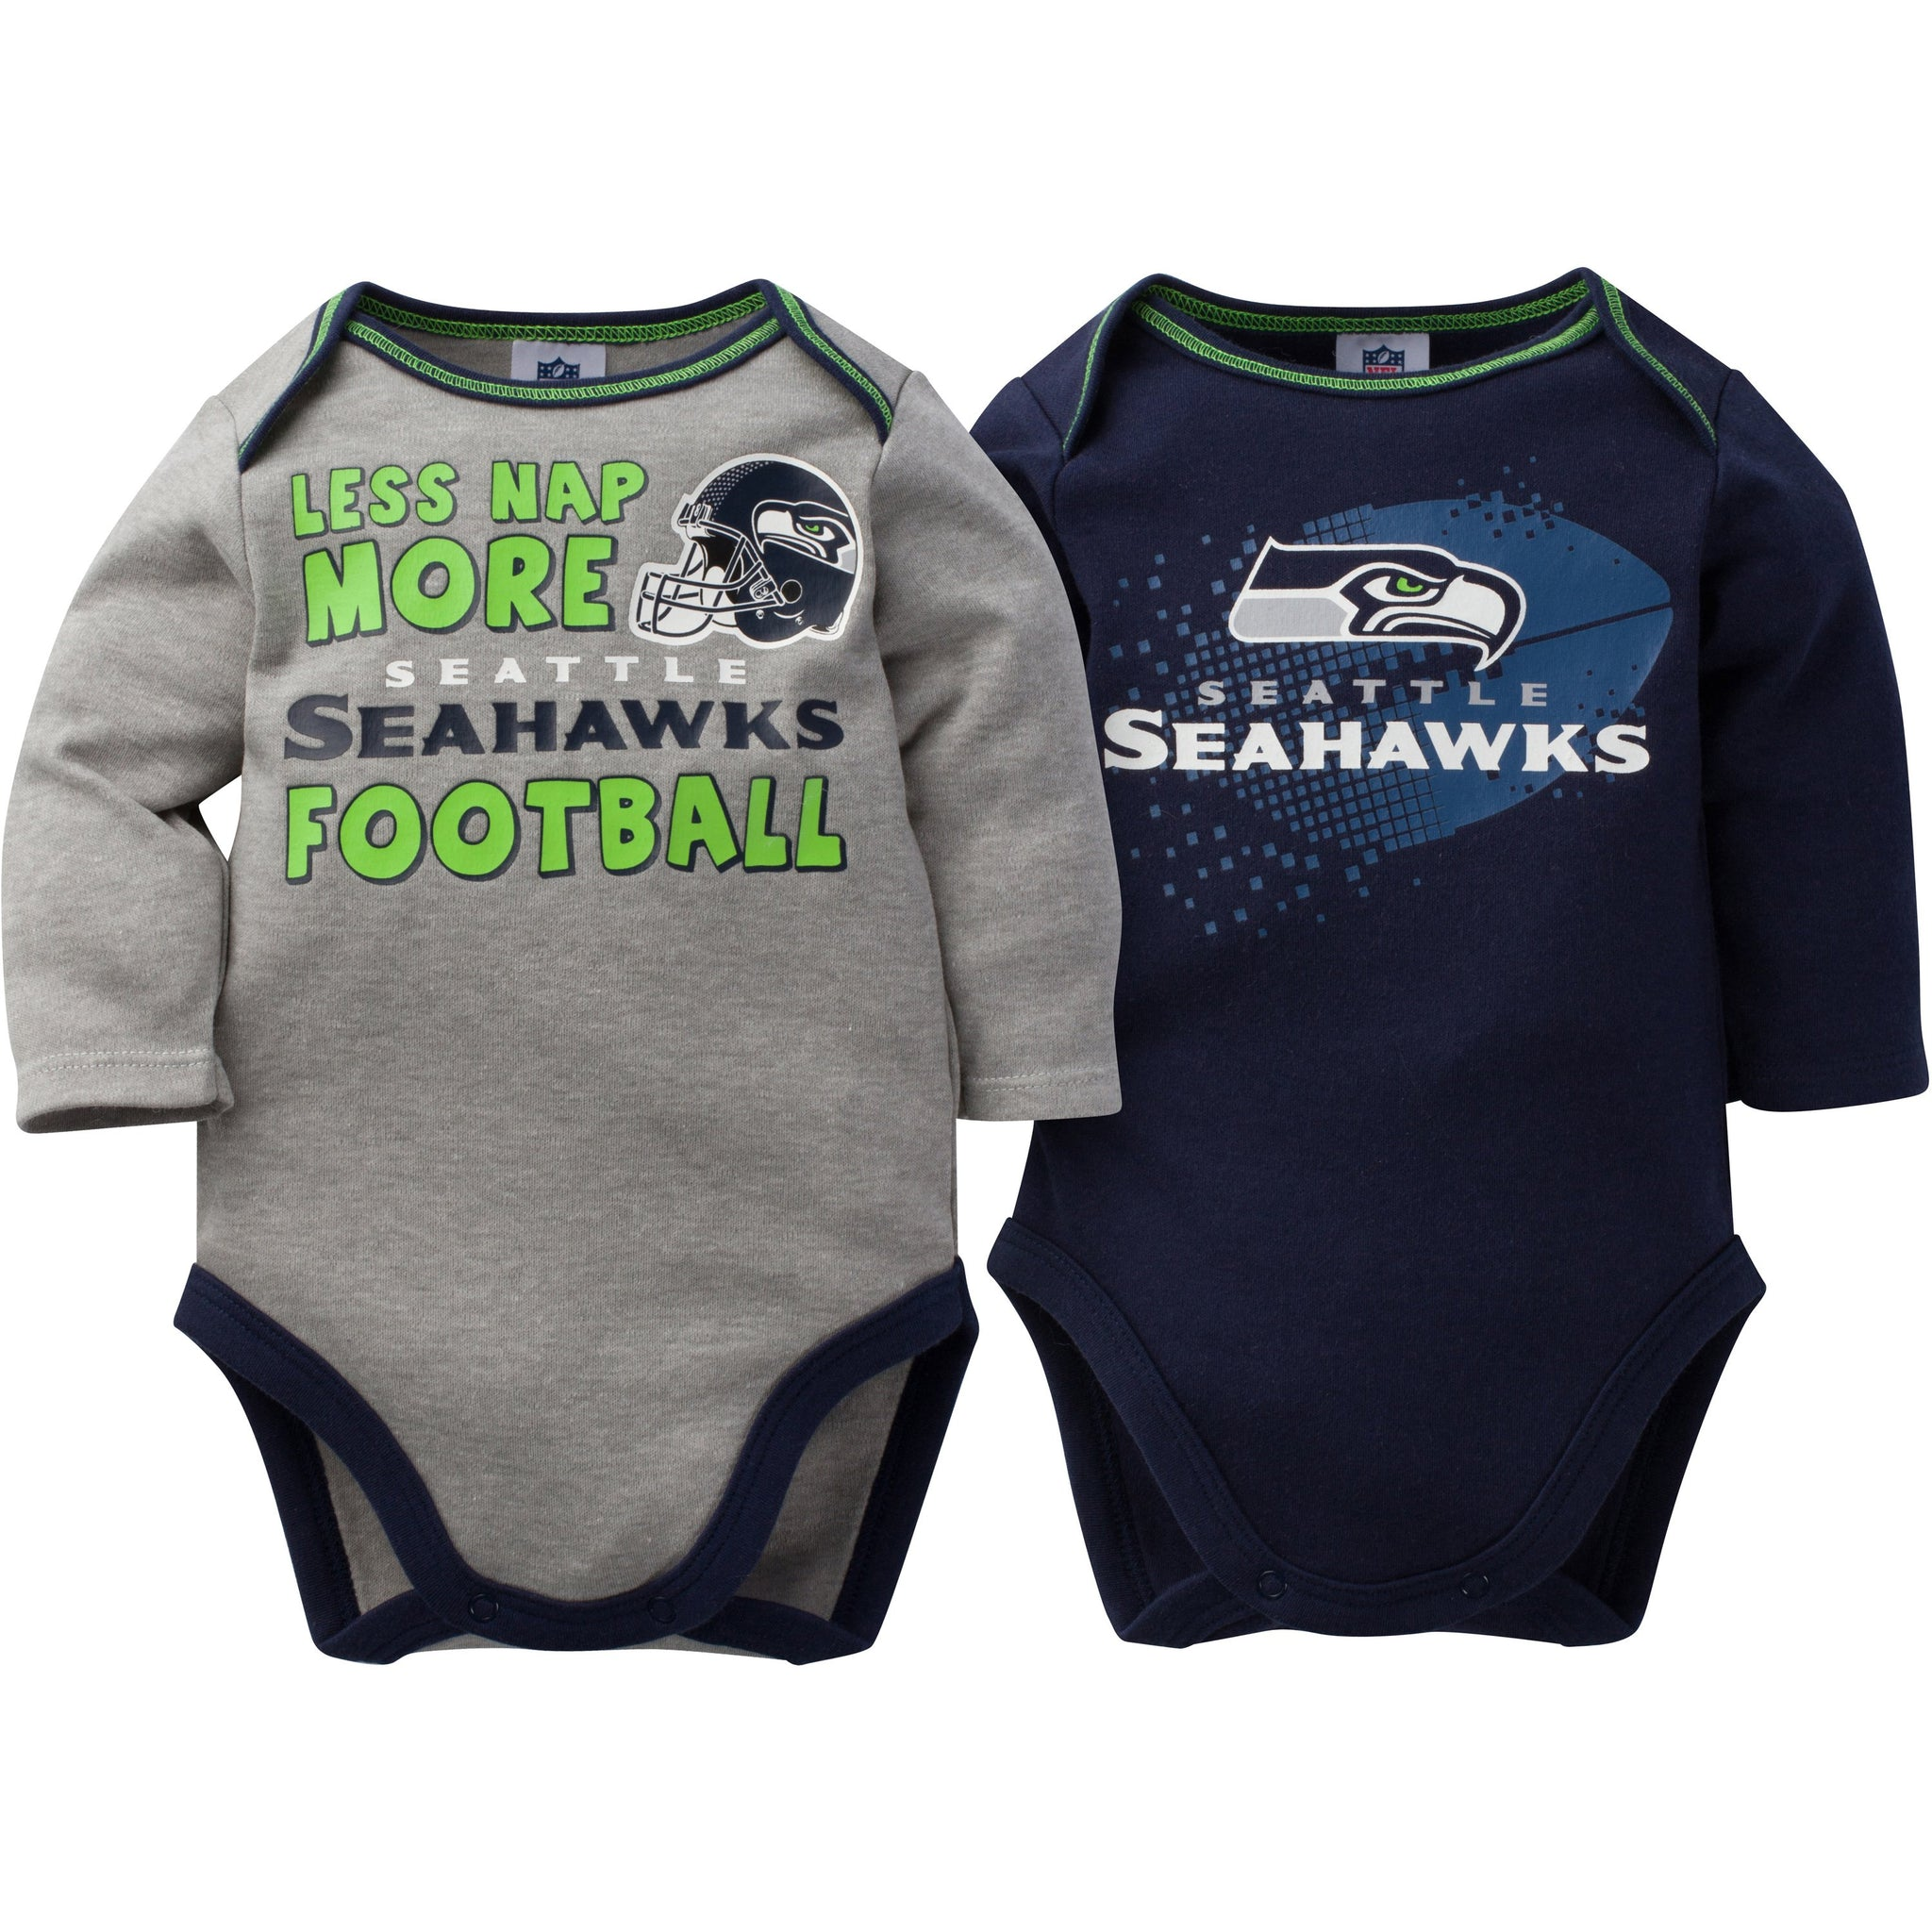 NFL Seahawks 2-Pack Infant Long Sleeve Bodysuits-Gerber Childrenswear